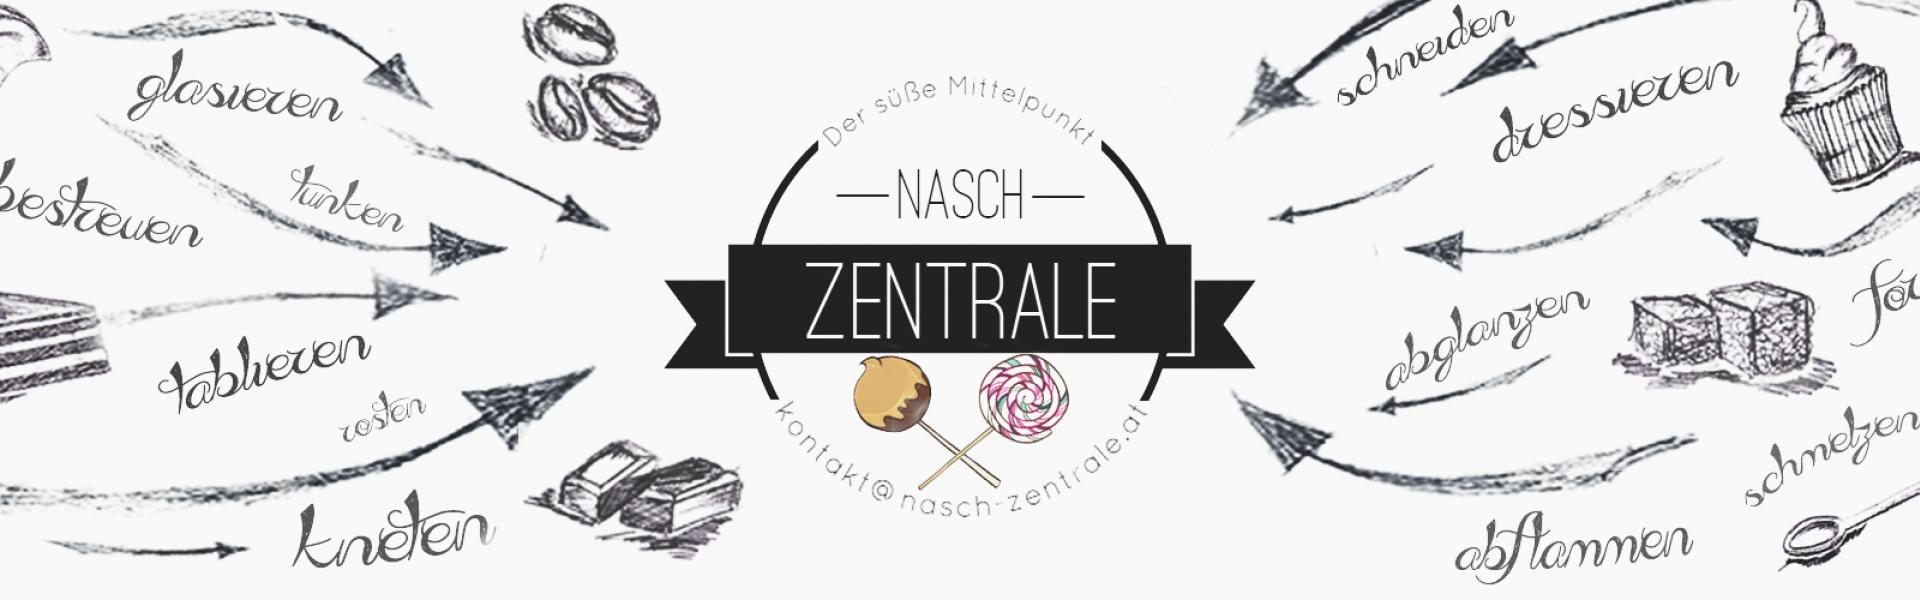 NaschZentrale cover